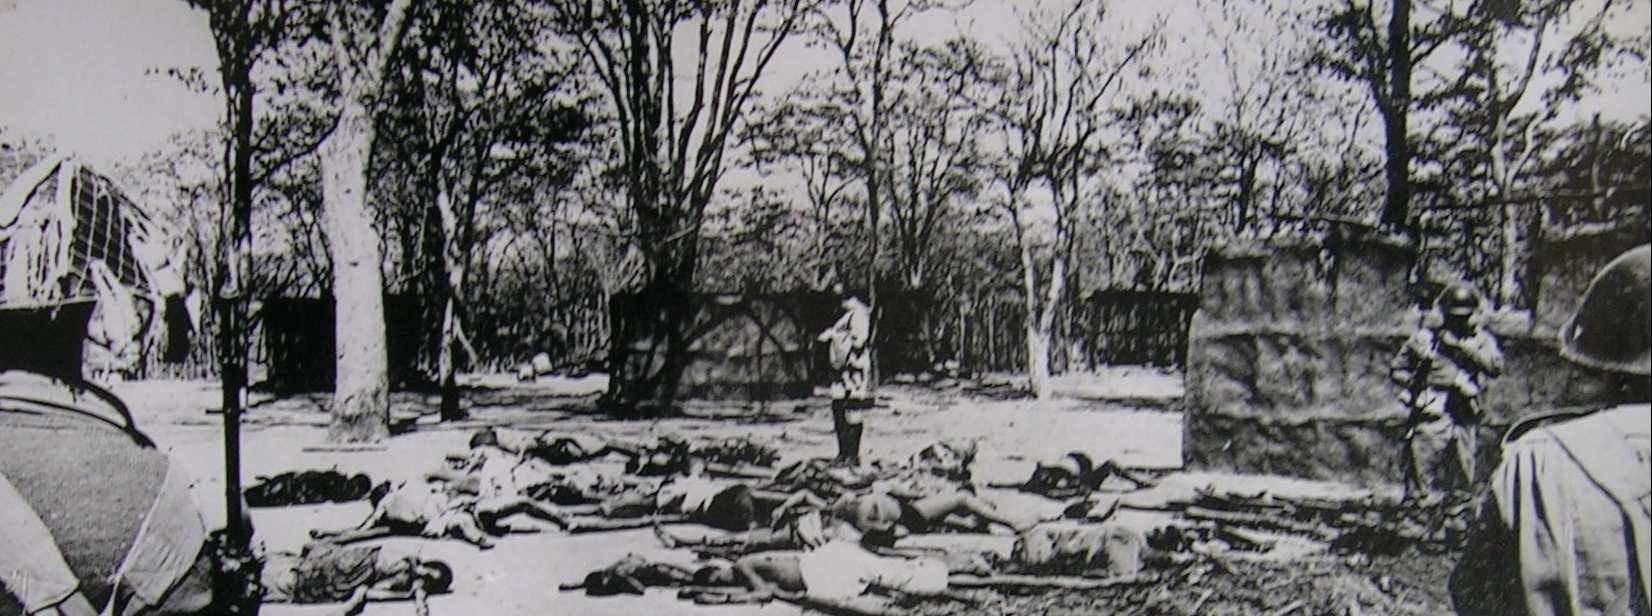 62 GORDON and destroy their settlement. They killed a second European policeman, Inspector Jordan. 61 Photo 4 Zambian soldiers survey the dead followers of Alice Lenshina, Chinsali District, 1964.